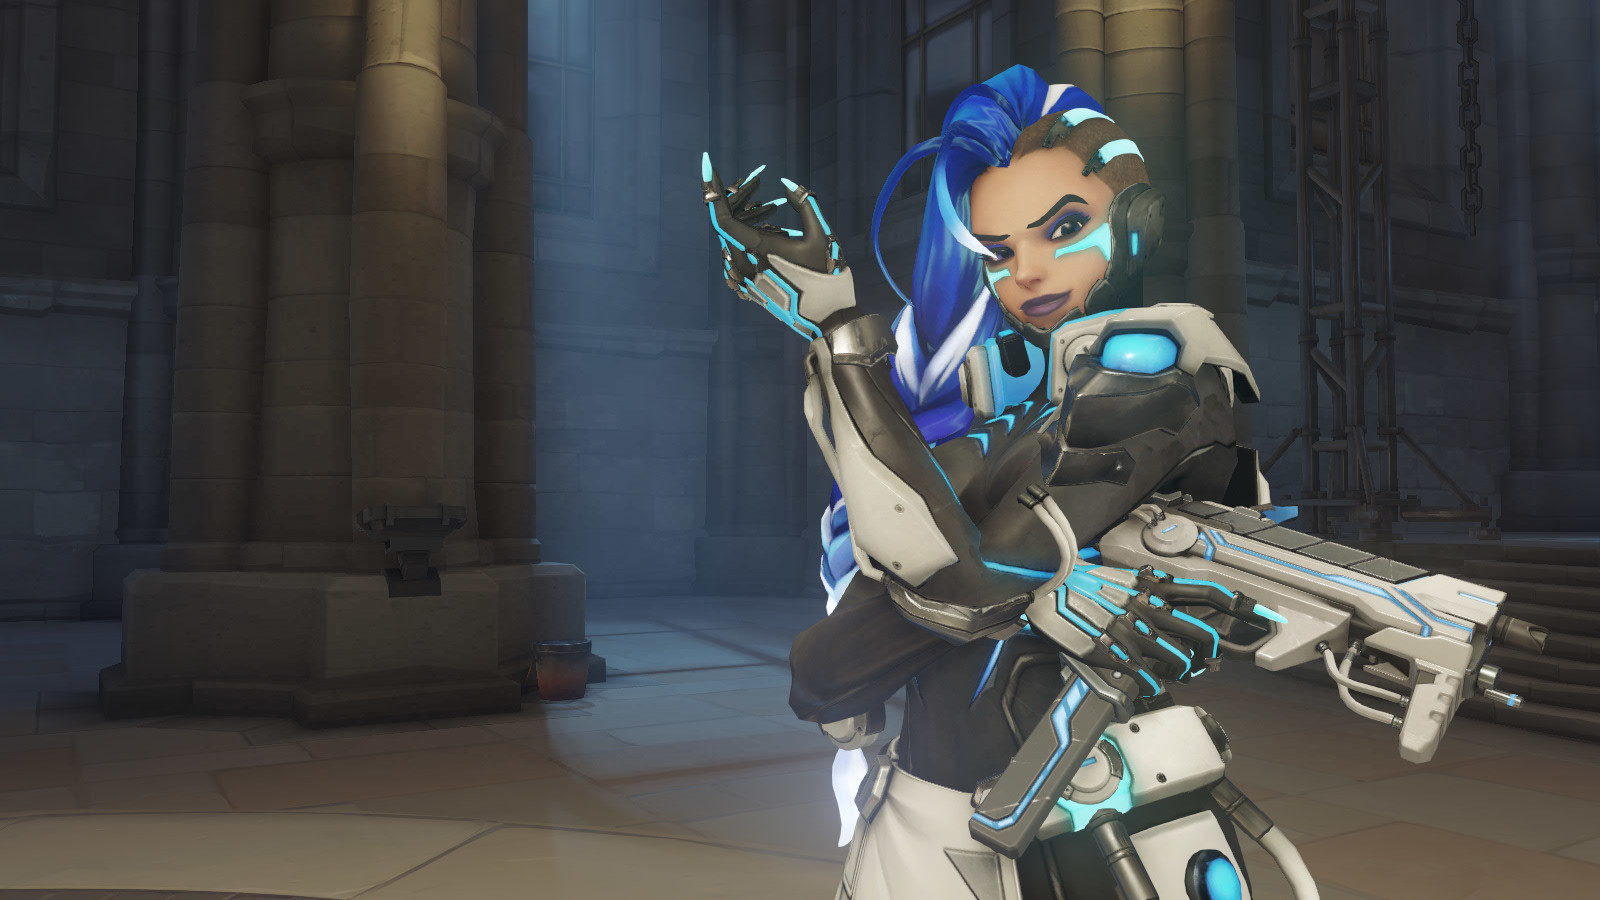 Hong Chan Lim Overwatch Sombra Legendary And Epic Skins